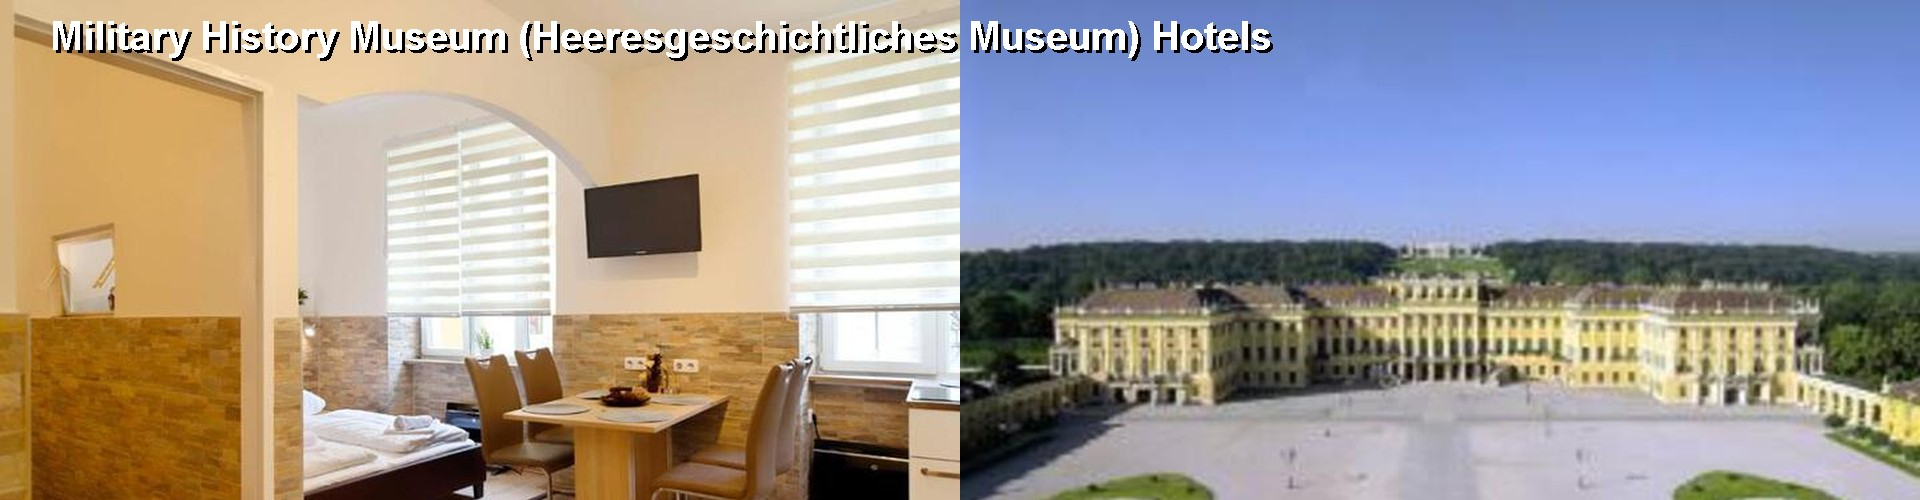 5 Best Hotels near Military History Museum (Heeresgeschichtliches Museum)